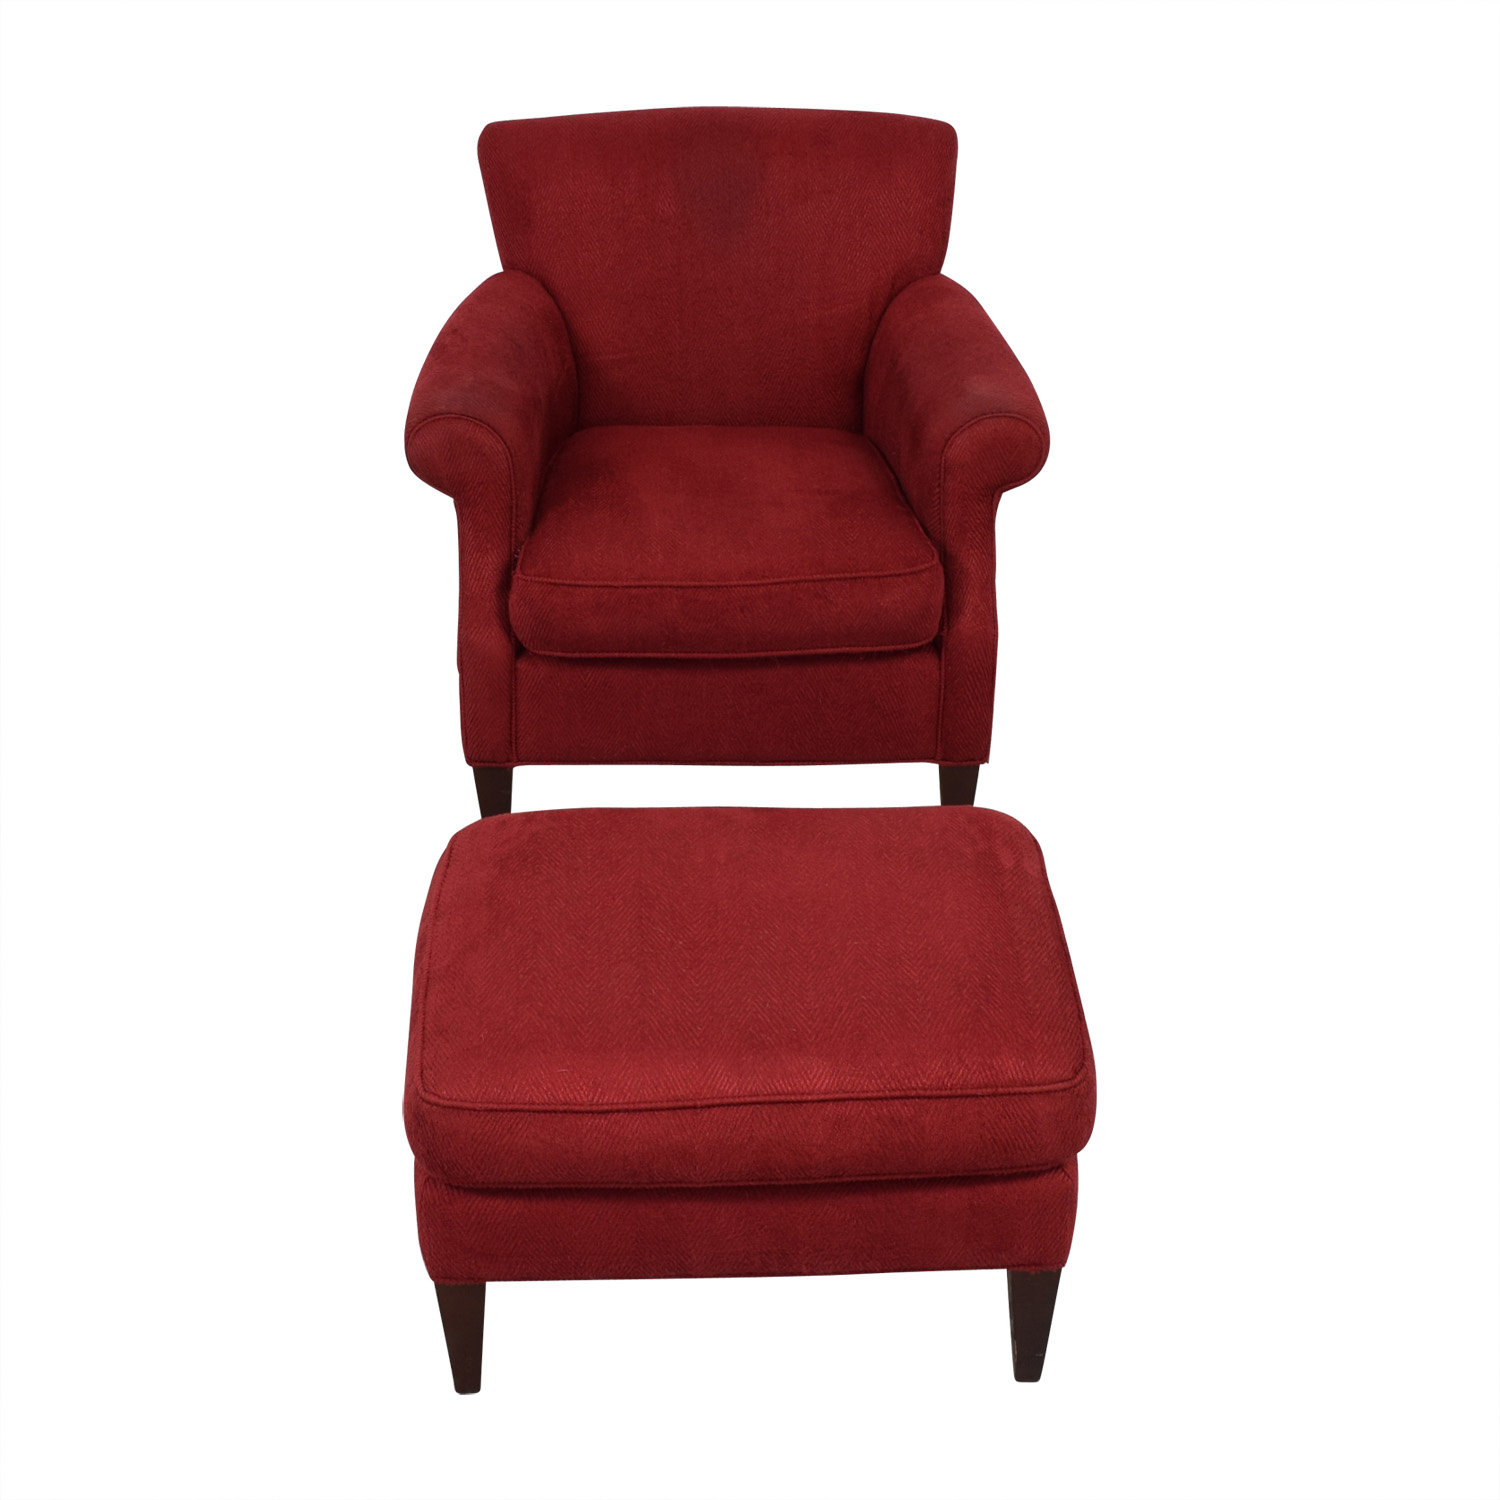 57 Off Crate Barrel Crate Barrel Red Roll Arm Accent Chair And Ottoman Chairs